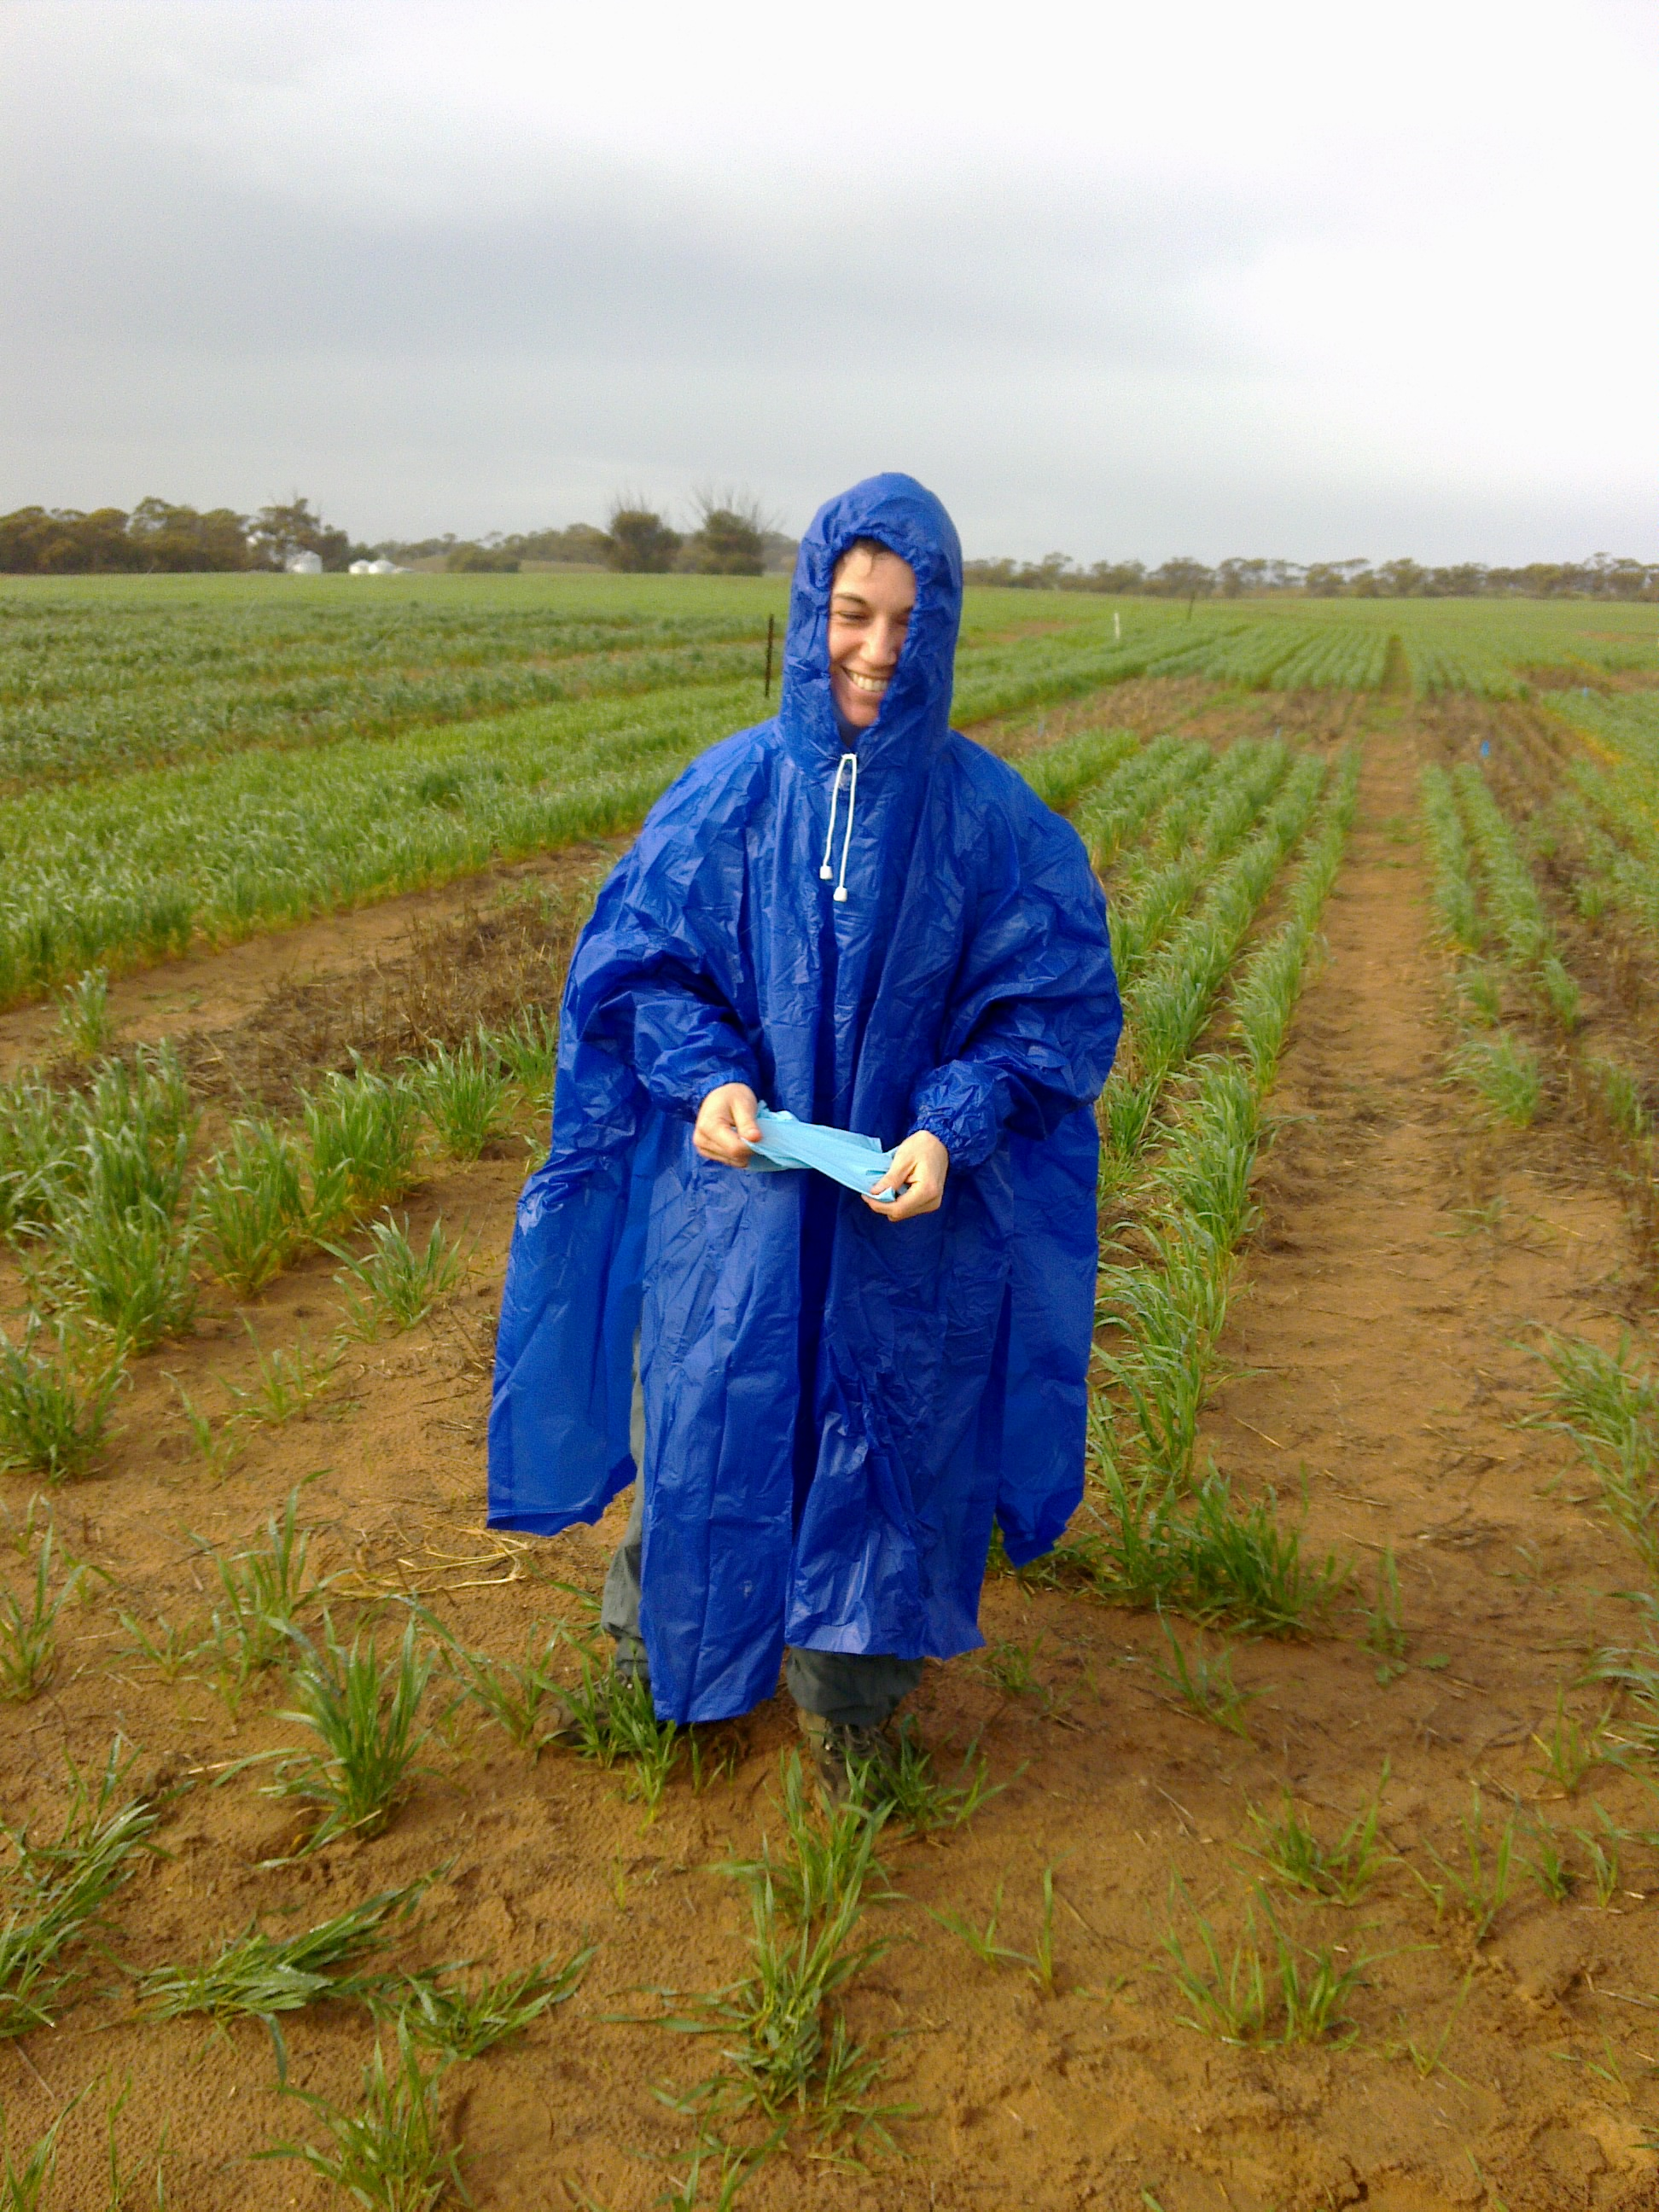 Pilar Muschietti in poncho outside in field